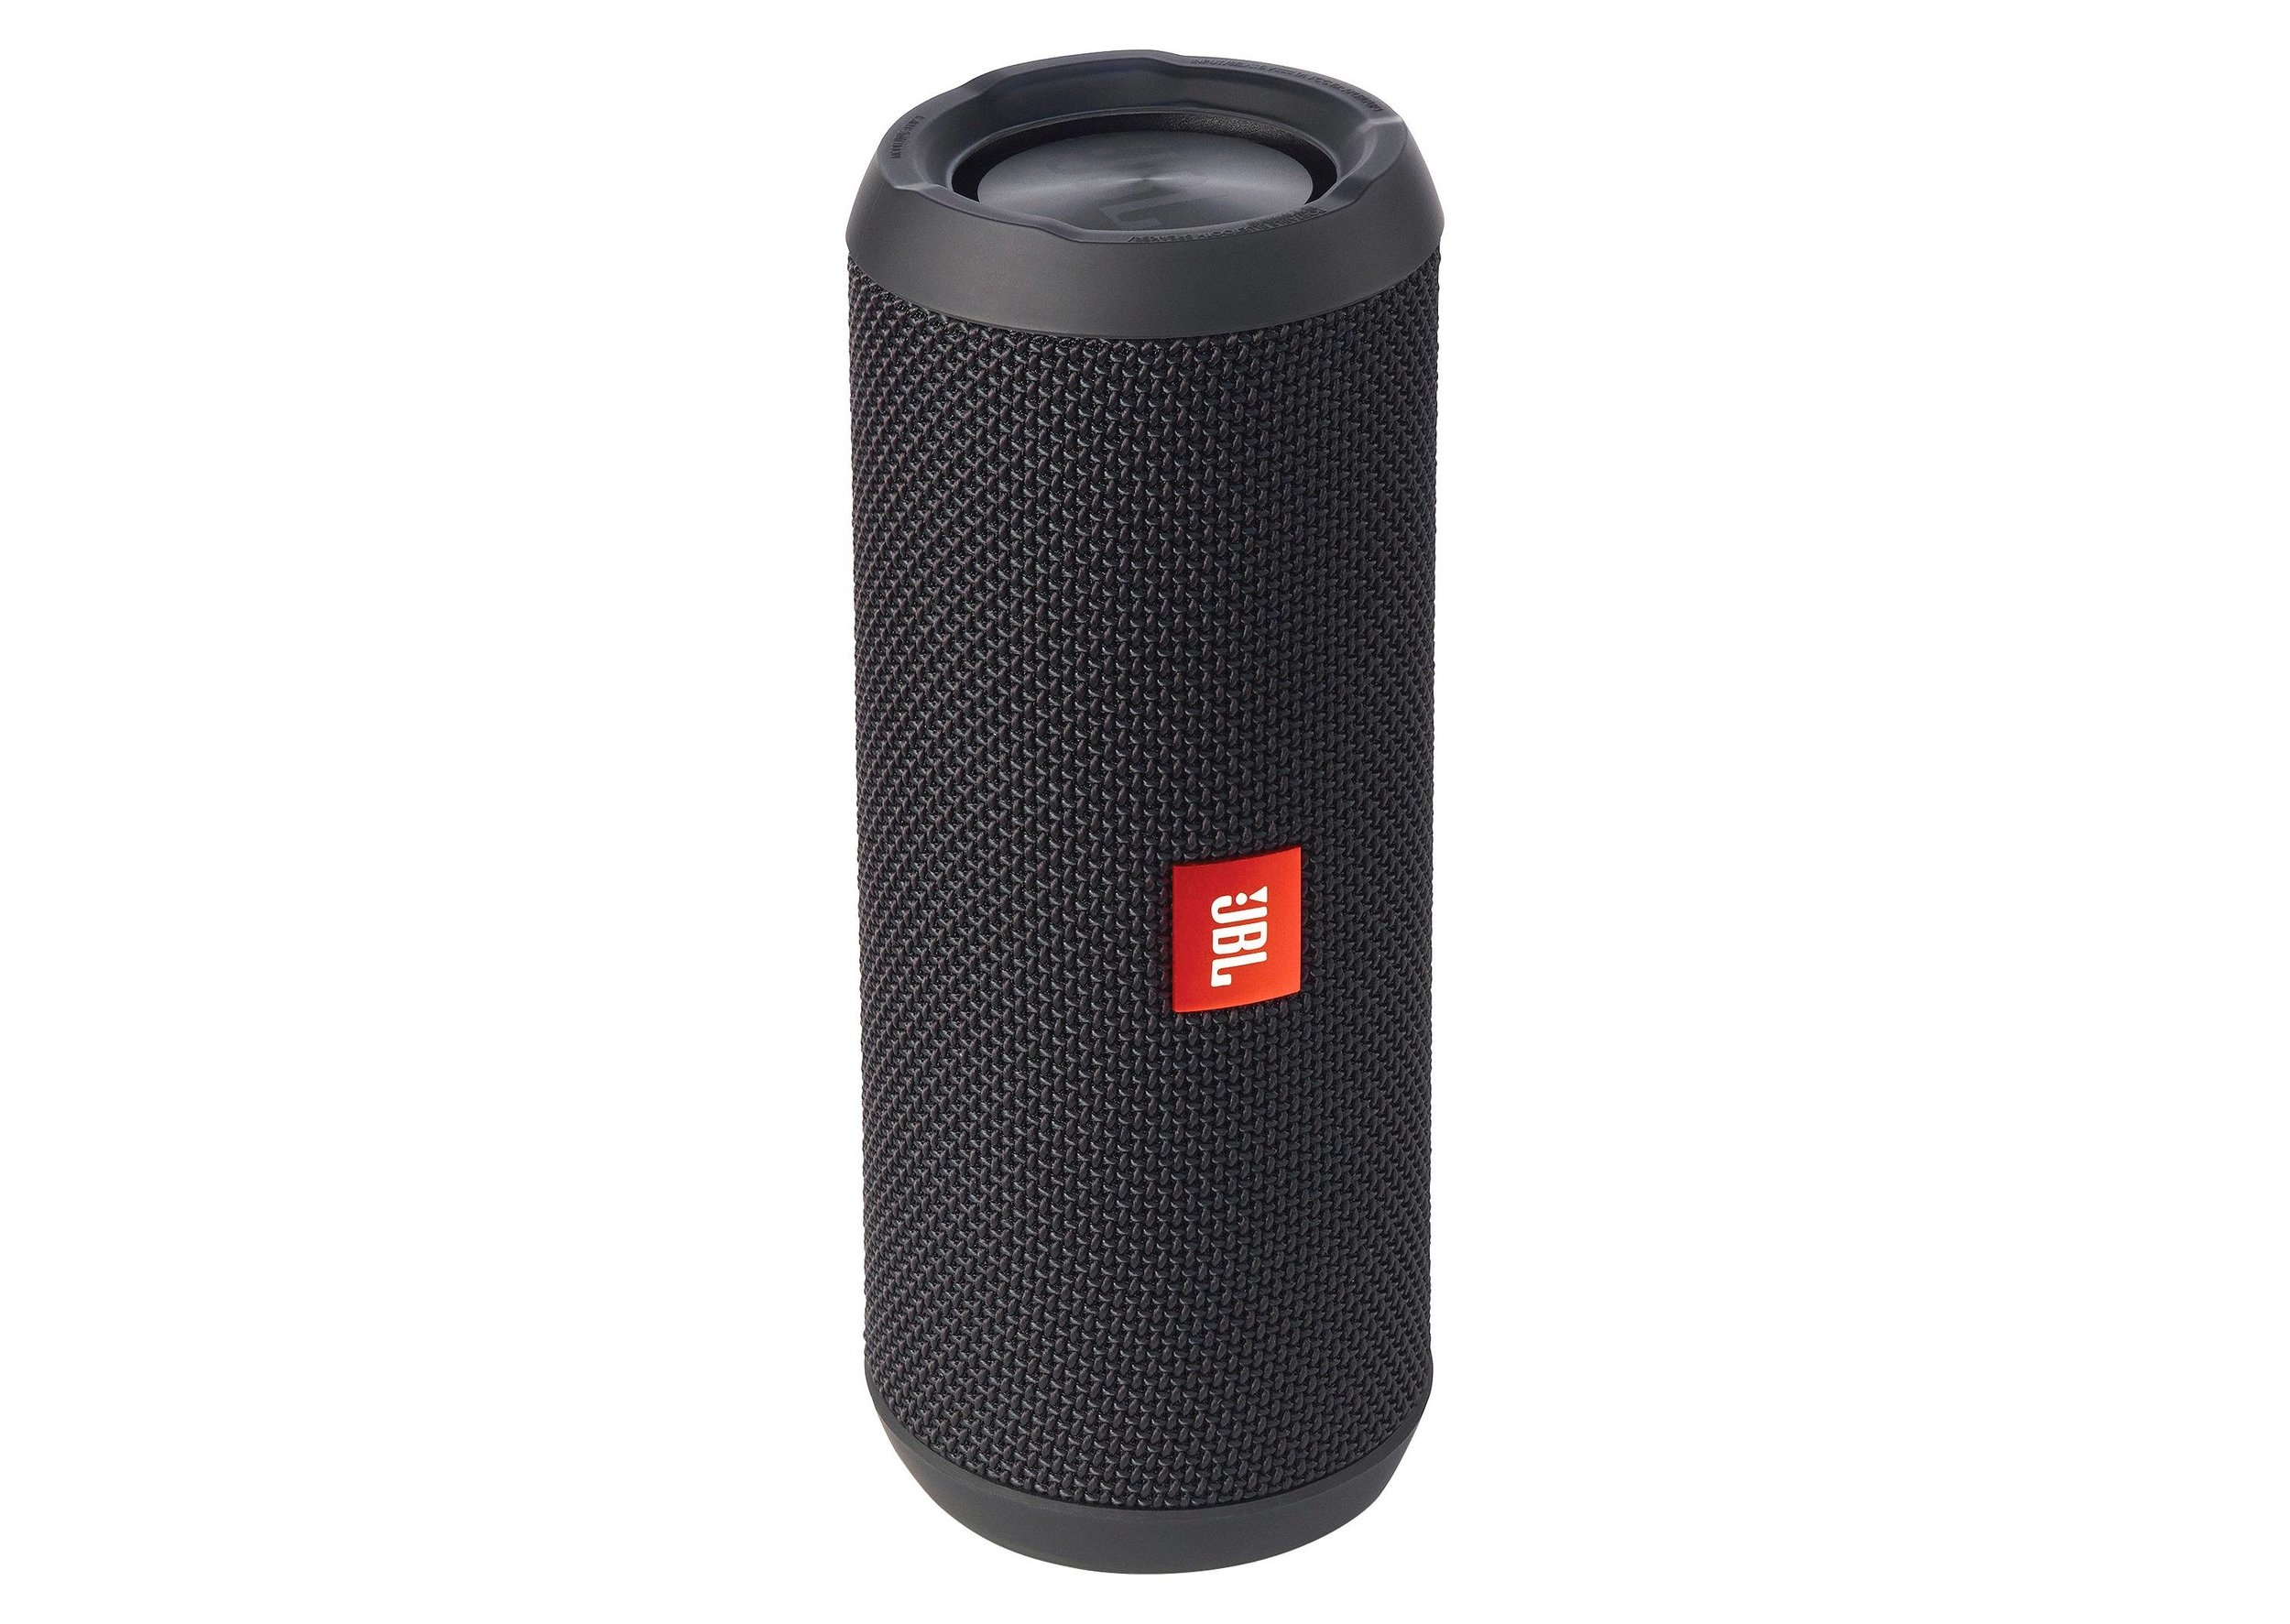 BLUETOOTH SPEAKER... - because they want to take the party everywhere and this is a great way to do it